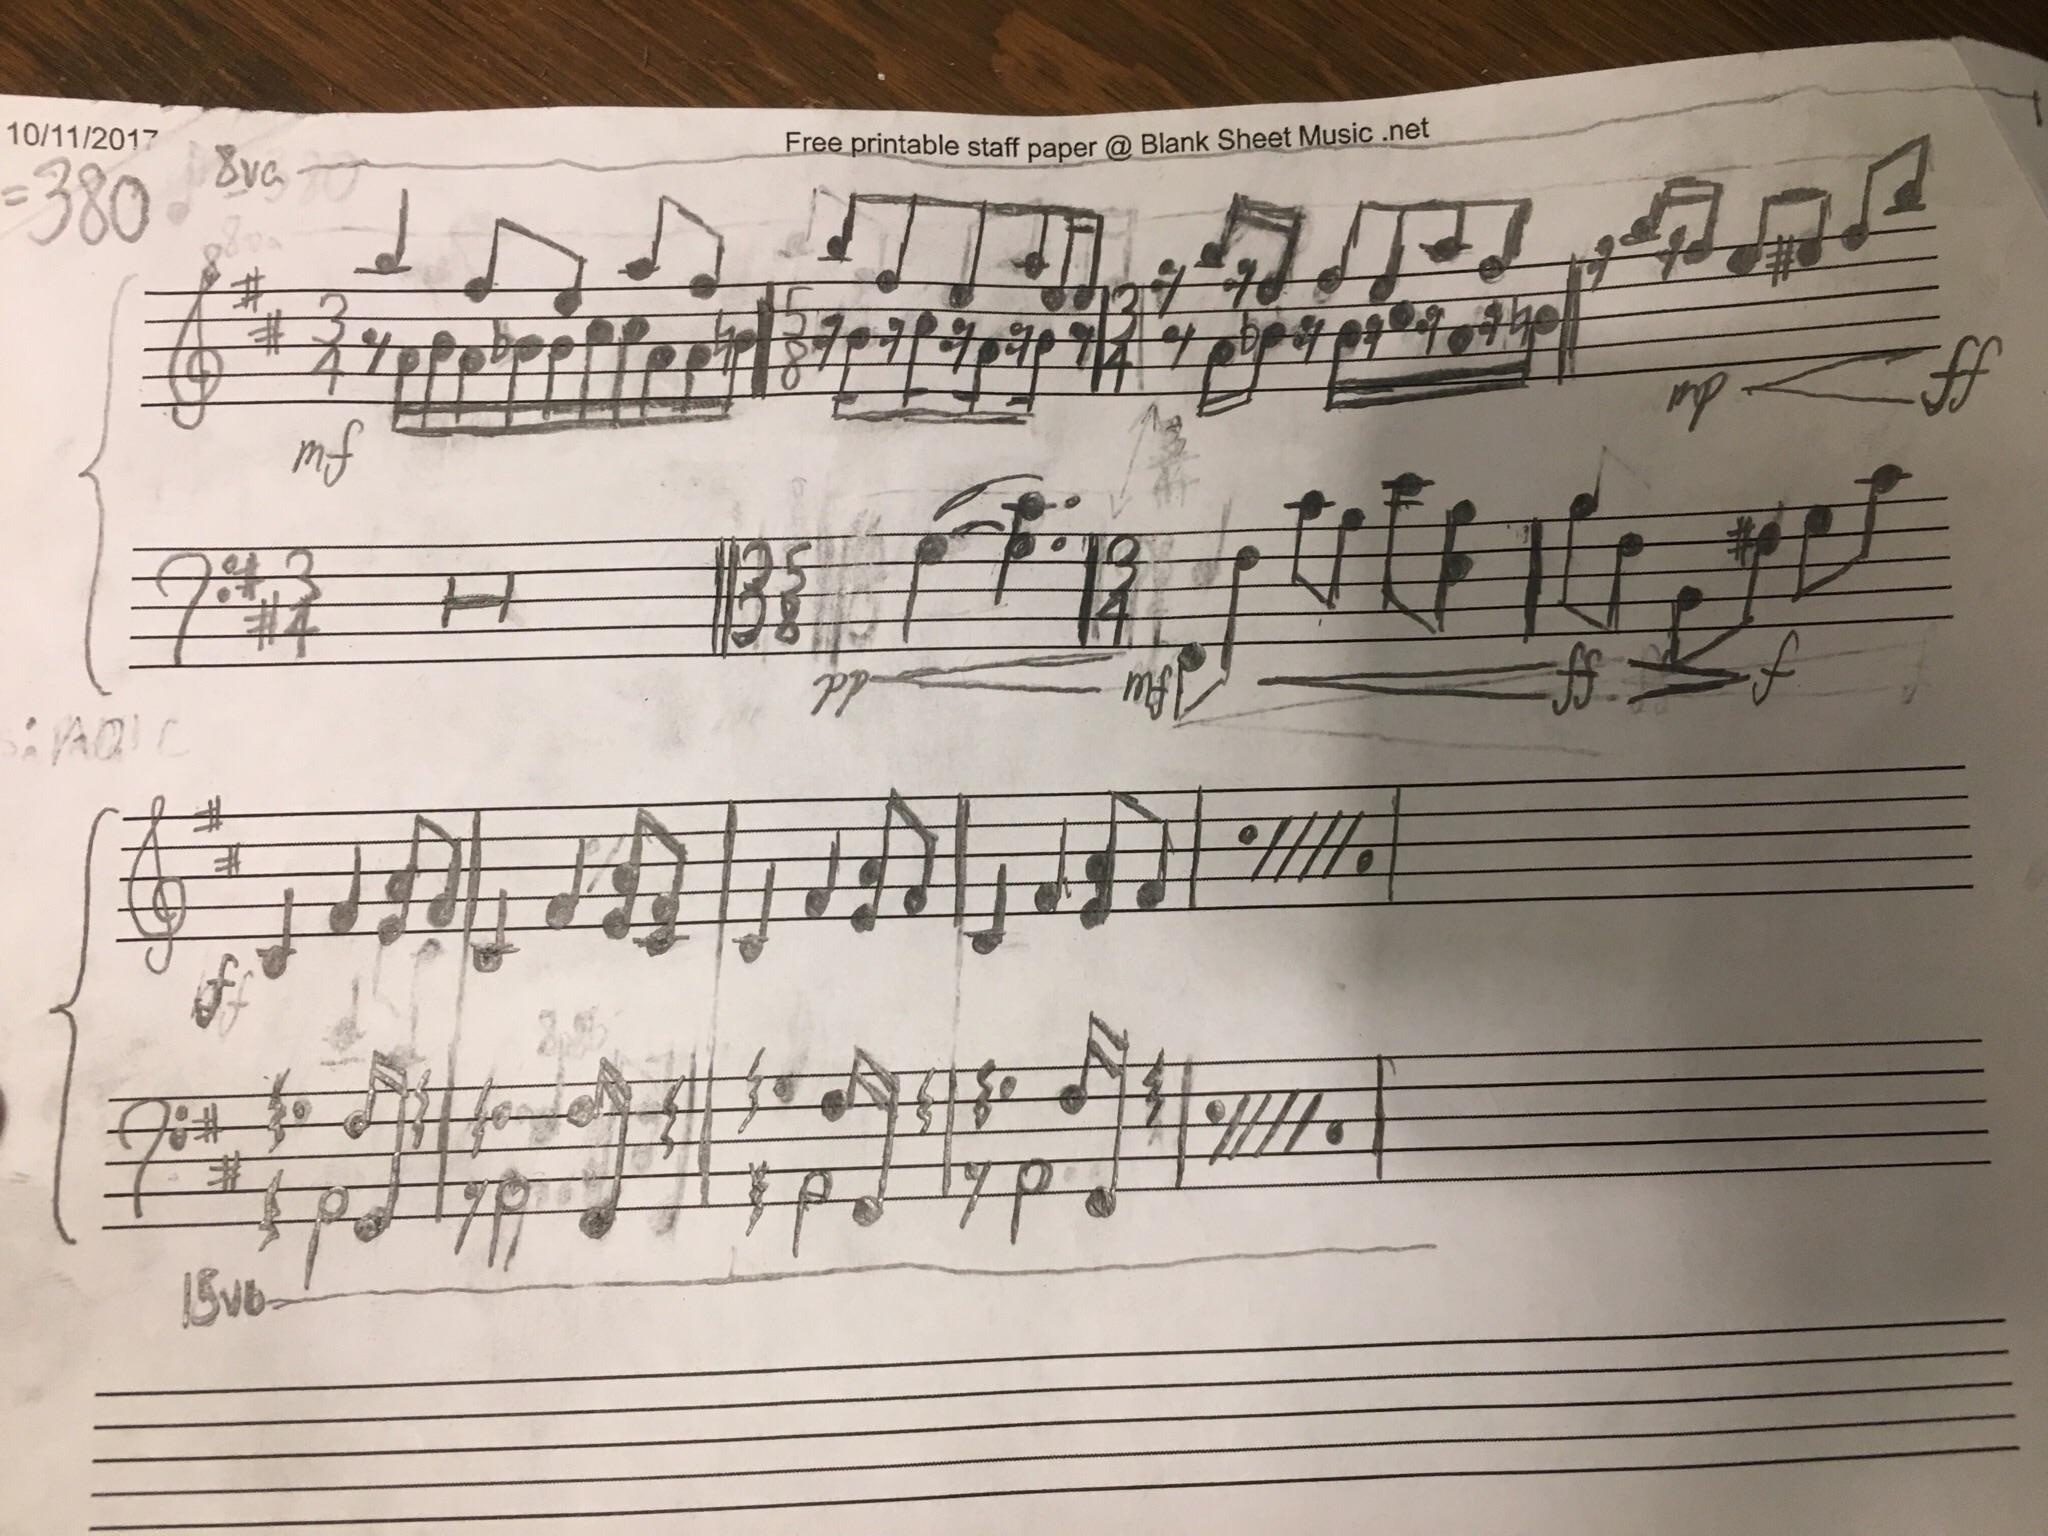 Op] I Started Making Sheet Music For The Guardian Theme. Looks Like - Free Printable Staff Paper Blank Sheet Music Net